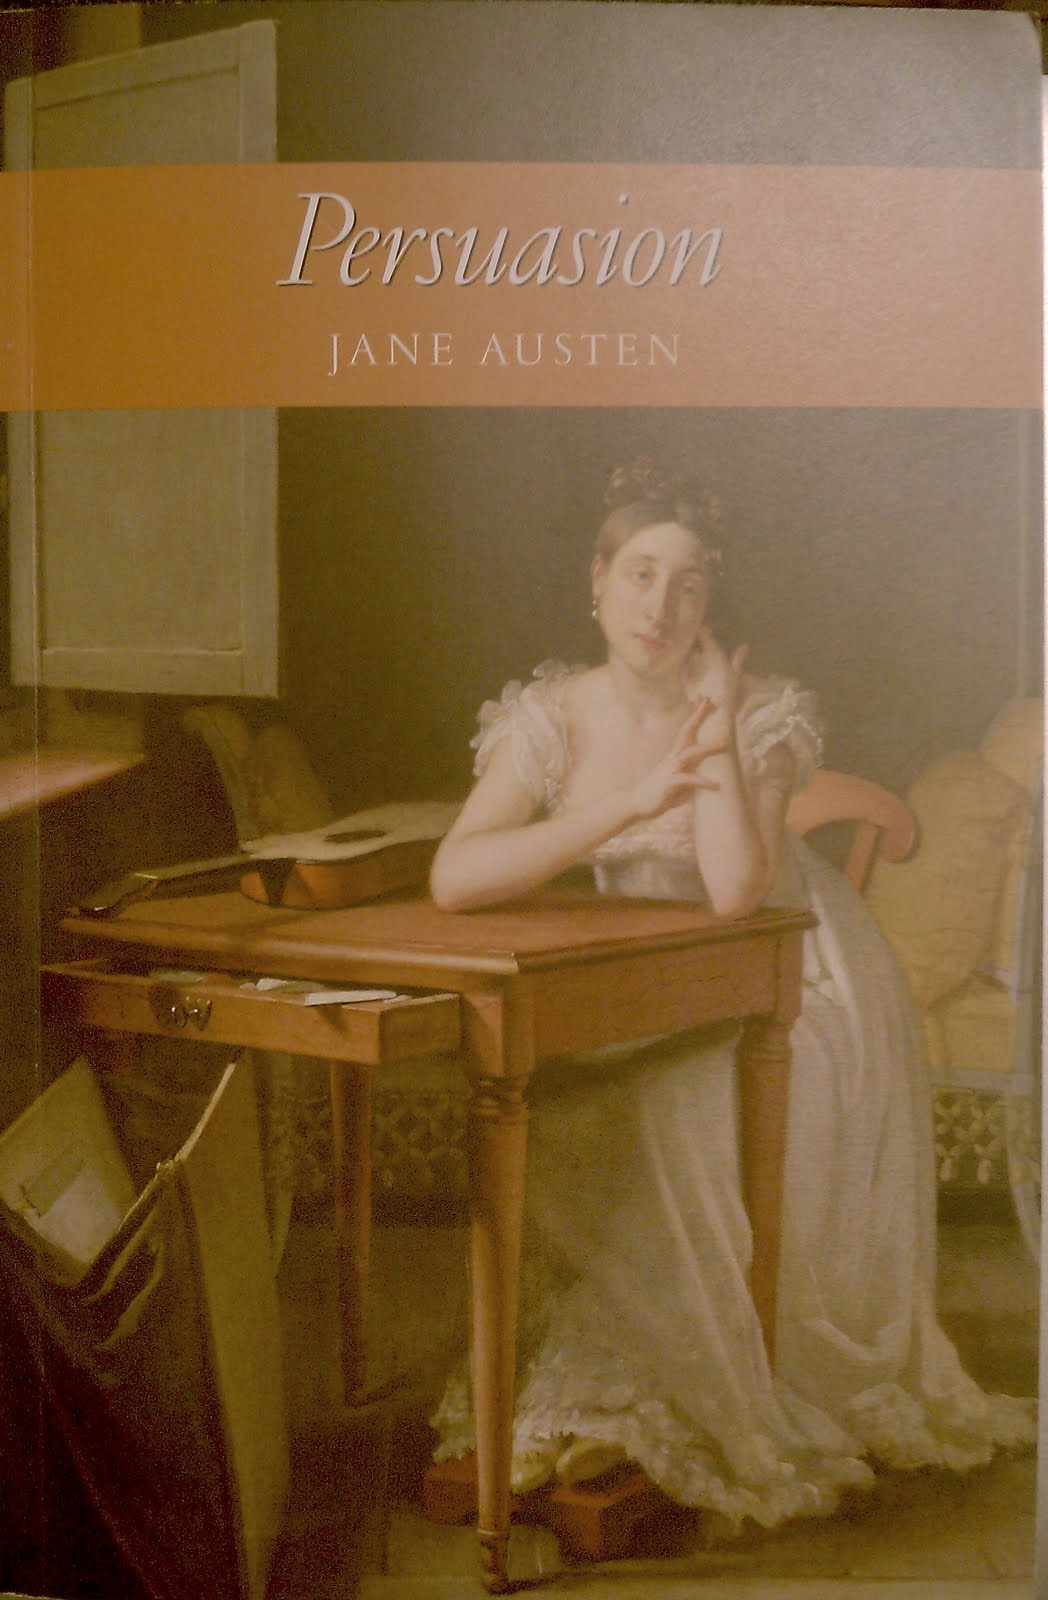 an analysis of romance in persuasion by jane austen Susan morgan in her 1980 book on austen challenges litz on naming persuasion as a novel showing austen's assimilation of the new romantic persuasion by jane.